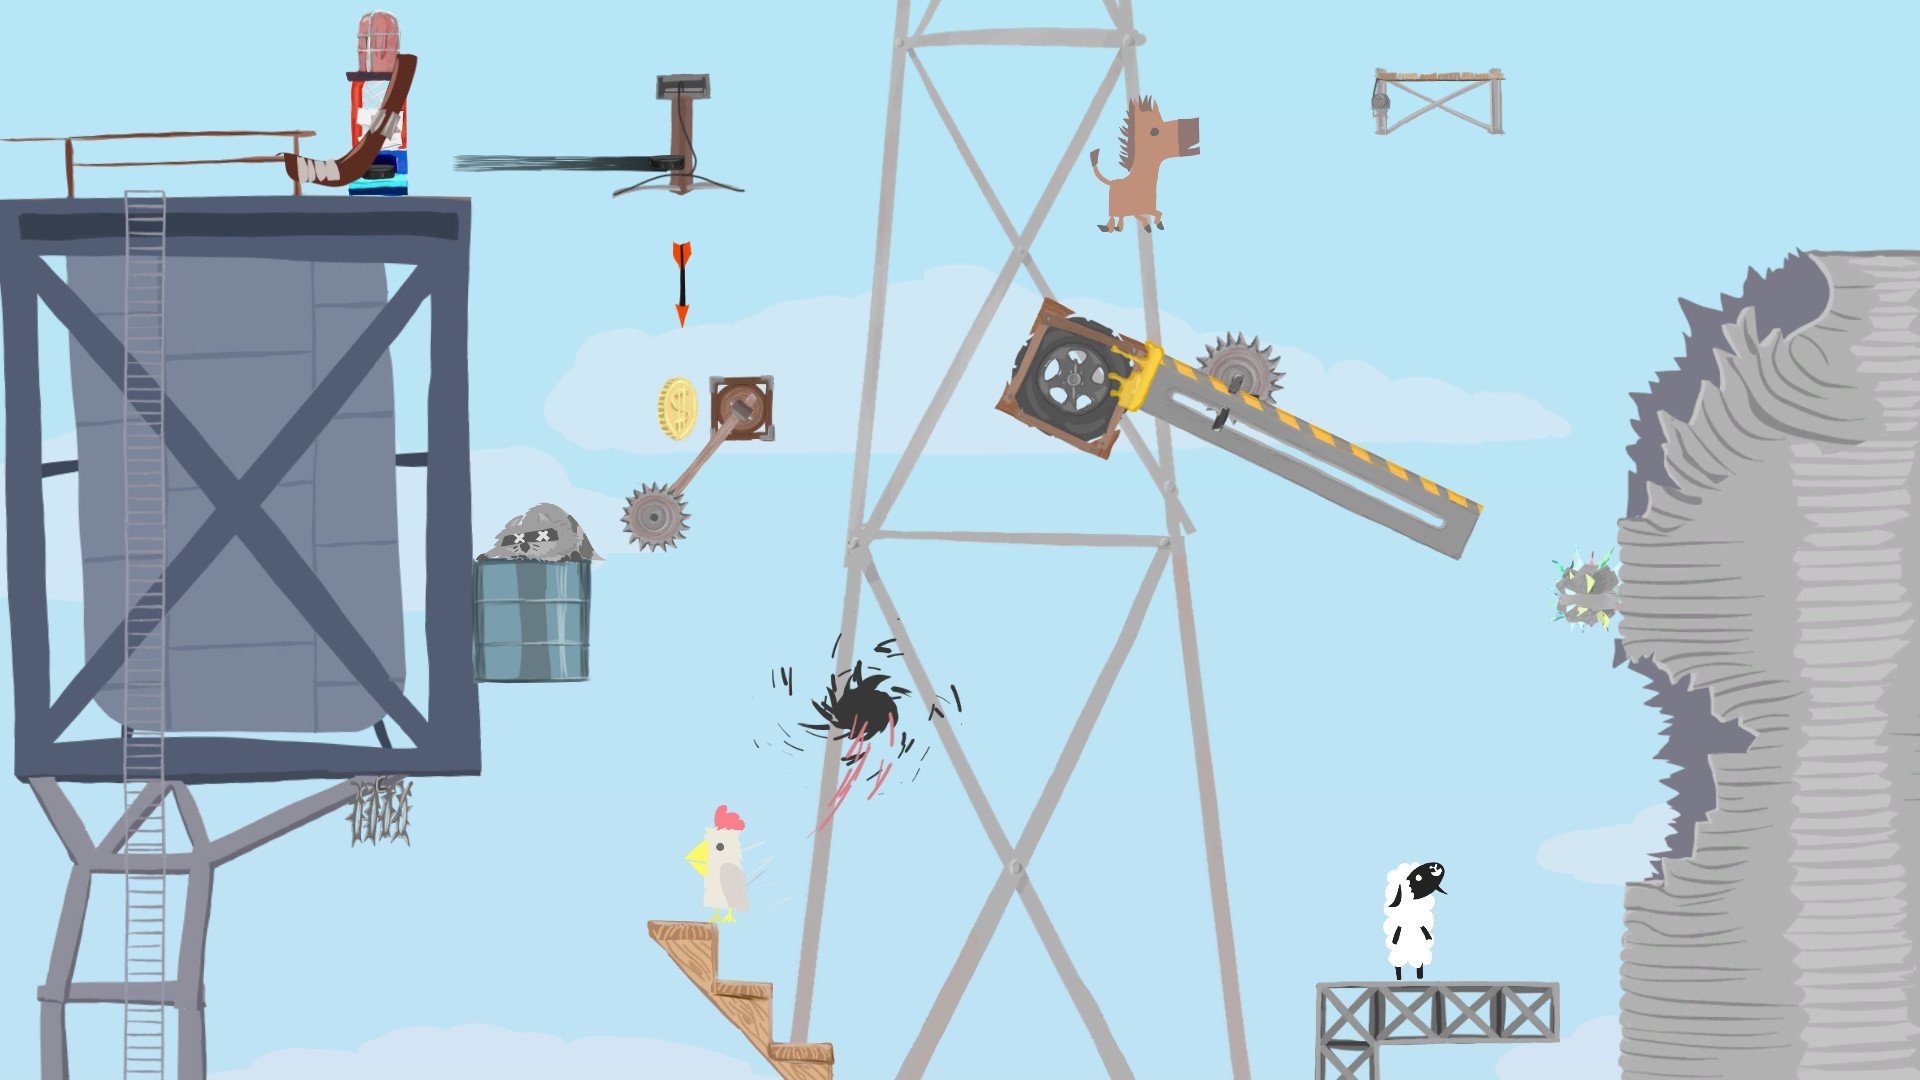 Ultimate Chicken Horse 7